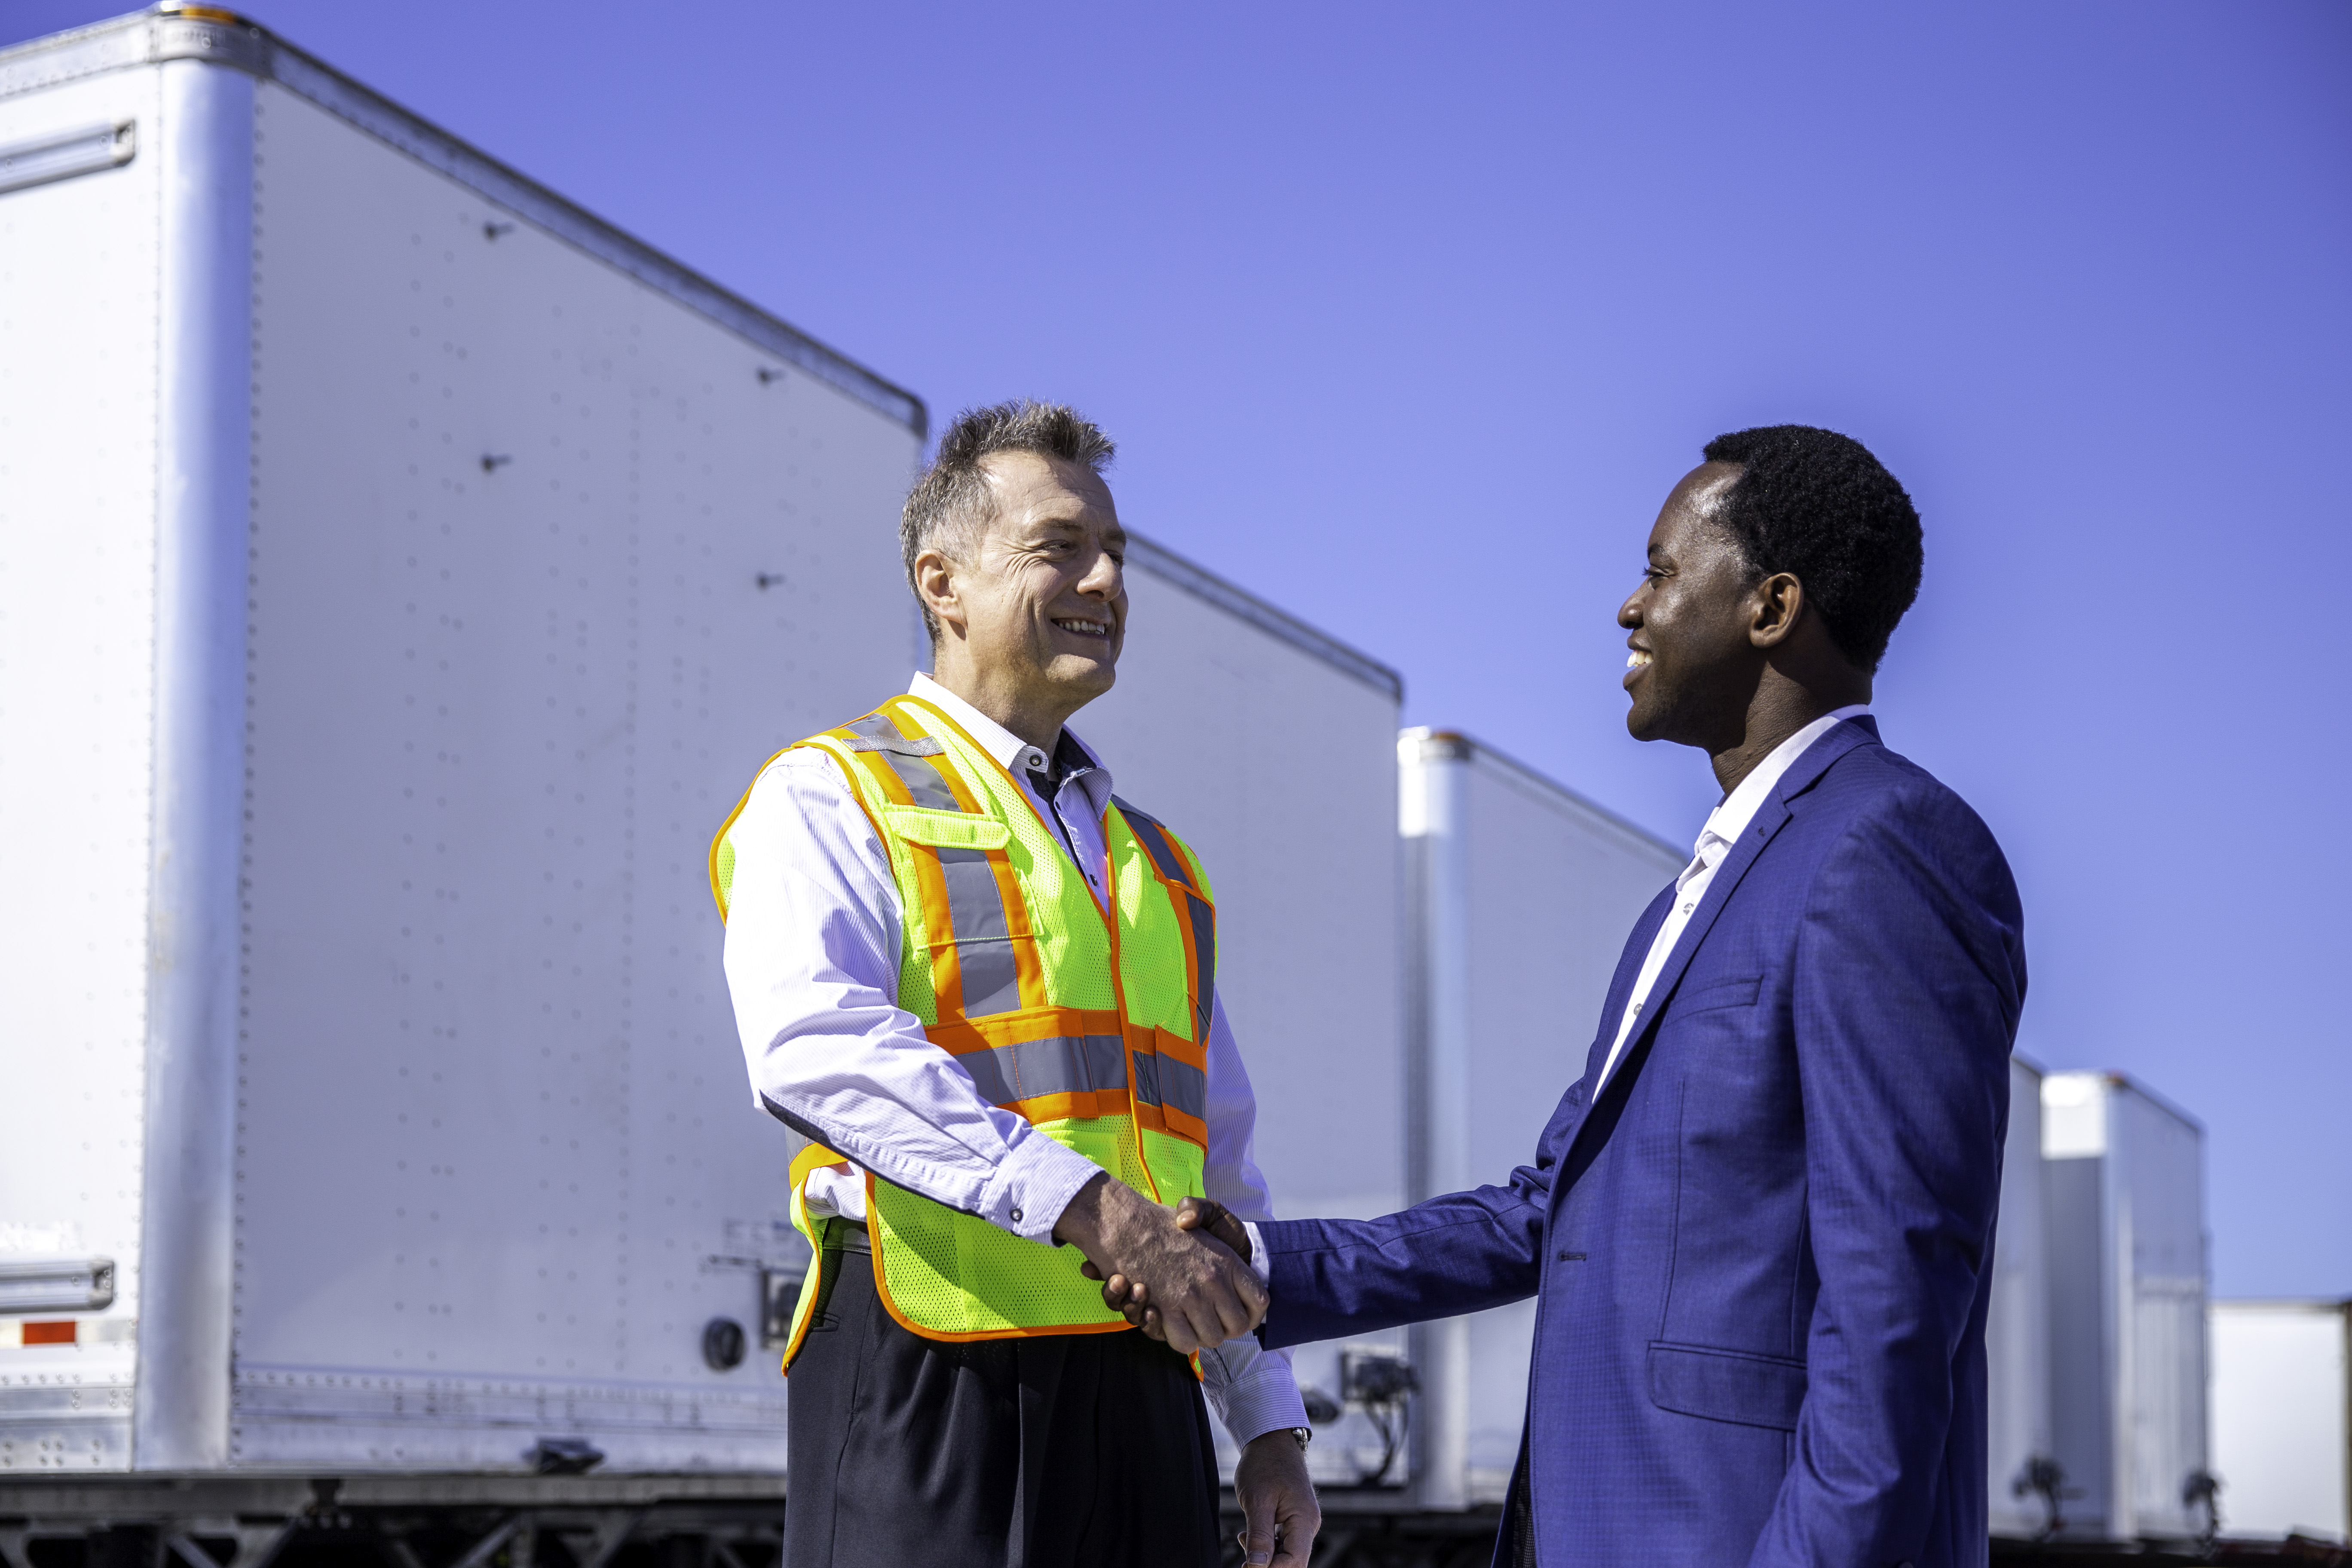 Two men shaking hands besides trailers